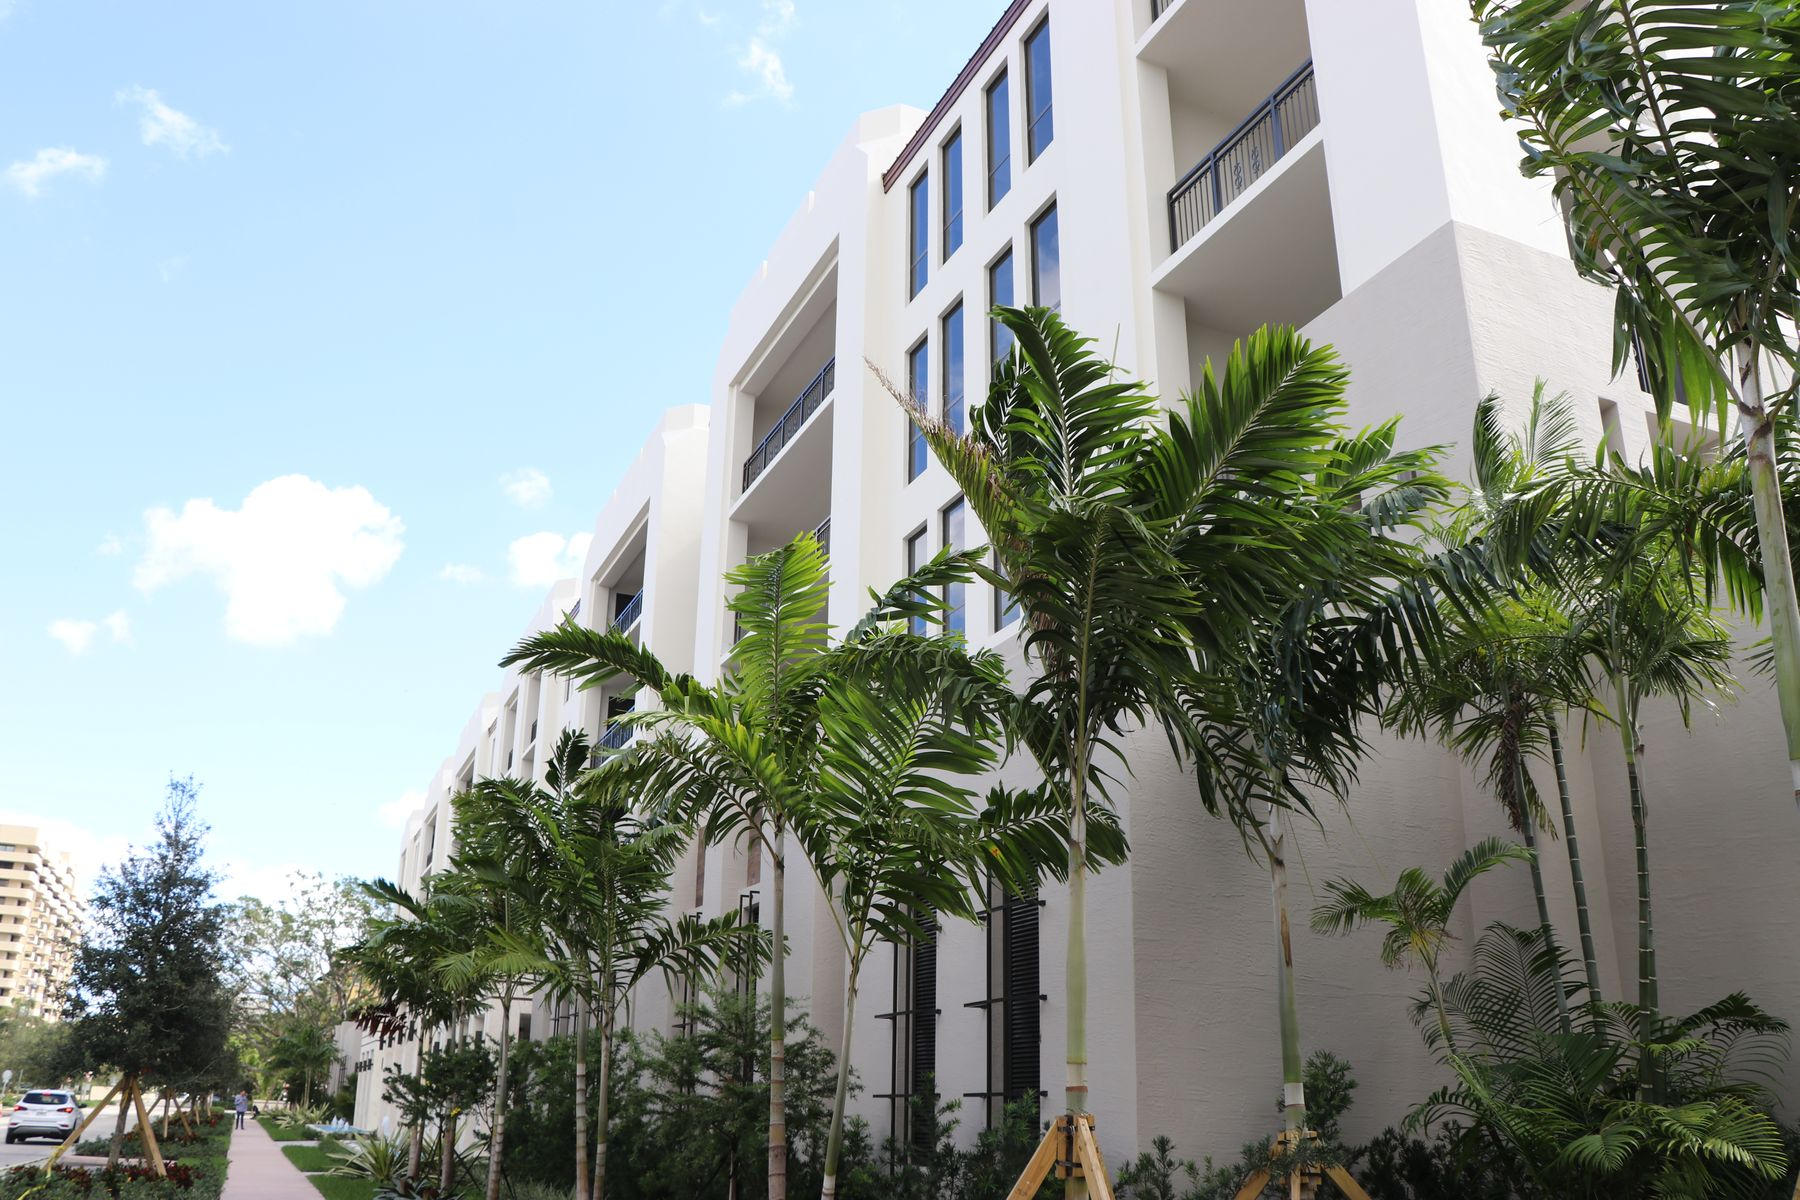 Check-Out Luxurious Biltmore Parc Which Just Opened In The Heart of Coral Gables